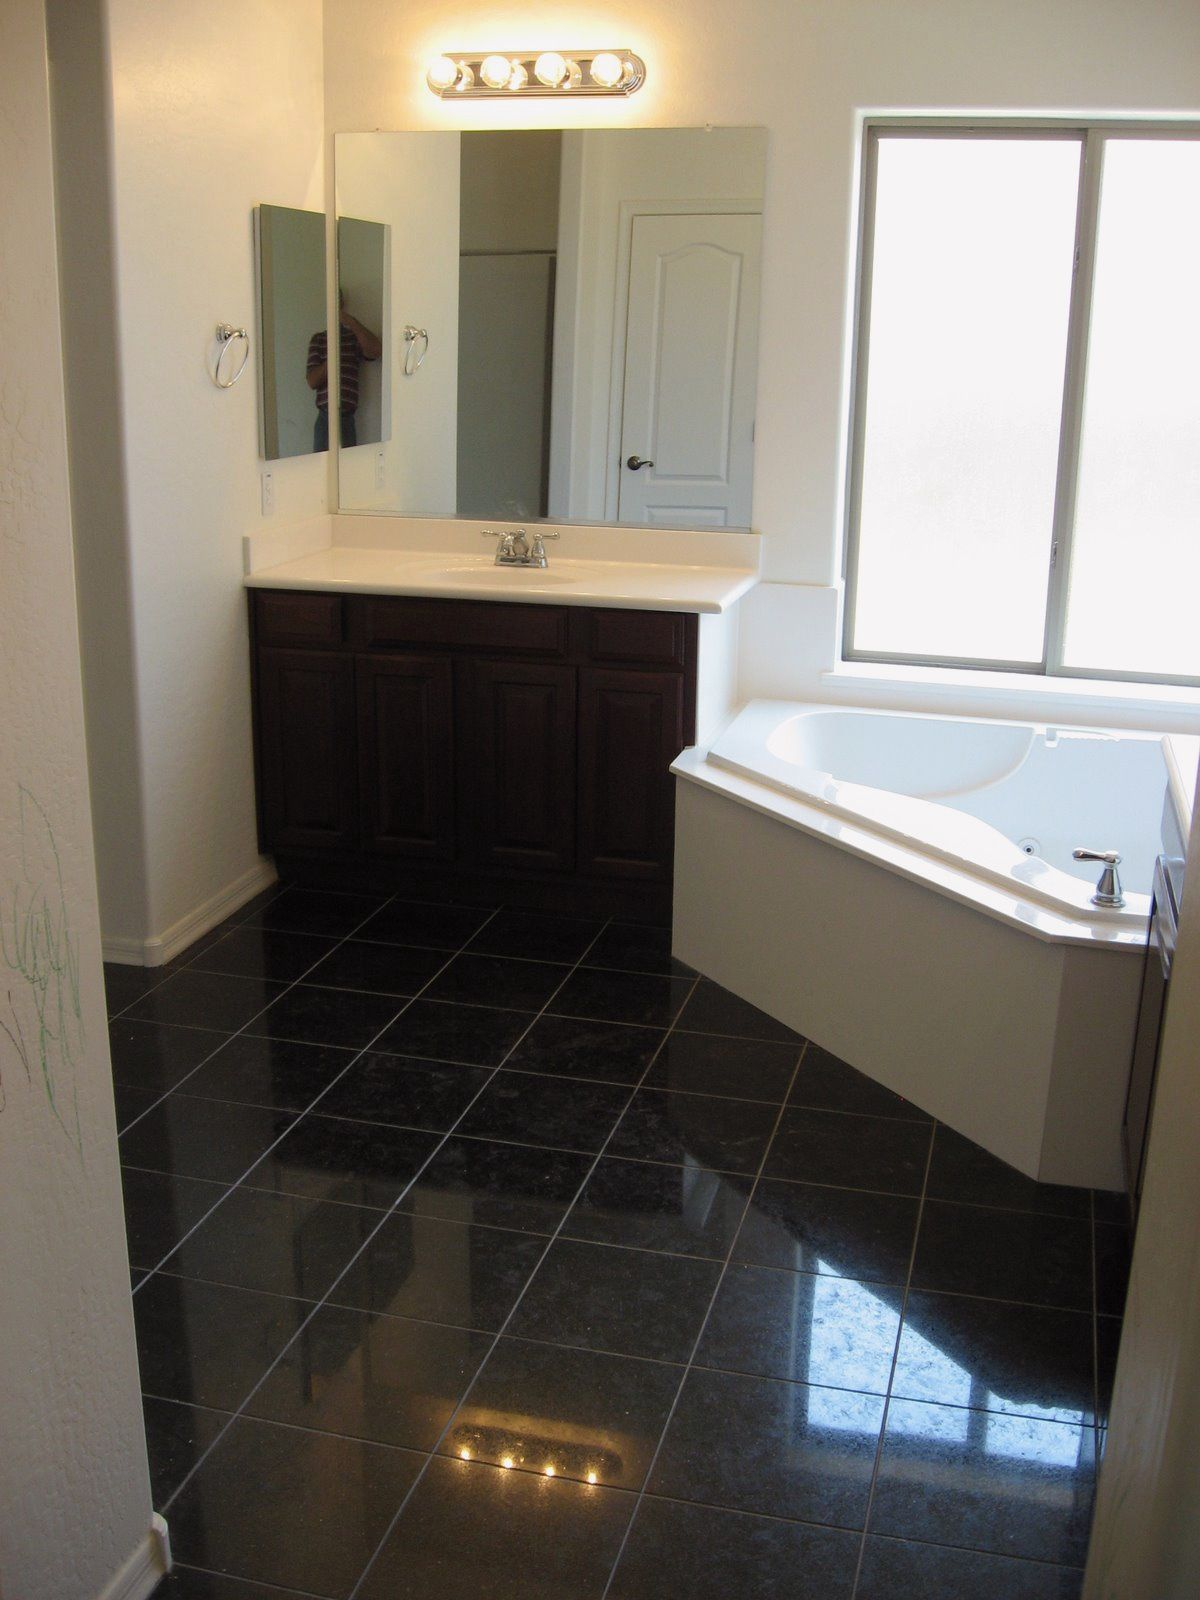 18 Granite Flooring Design In Chennai In 2020 Bathroom Wall Tile Tile Floor Bathroom Flooring